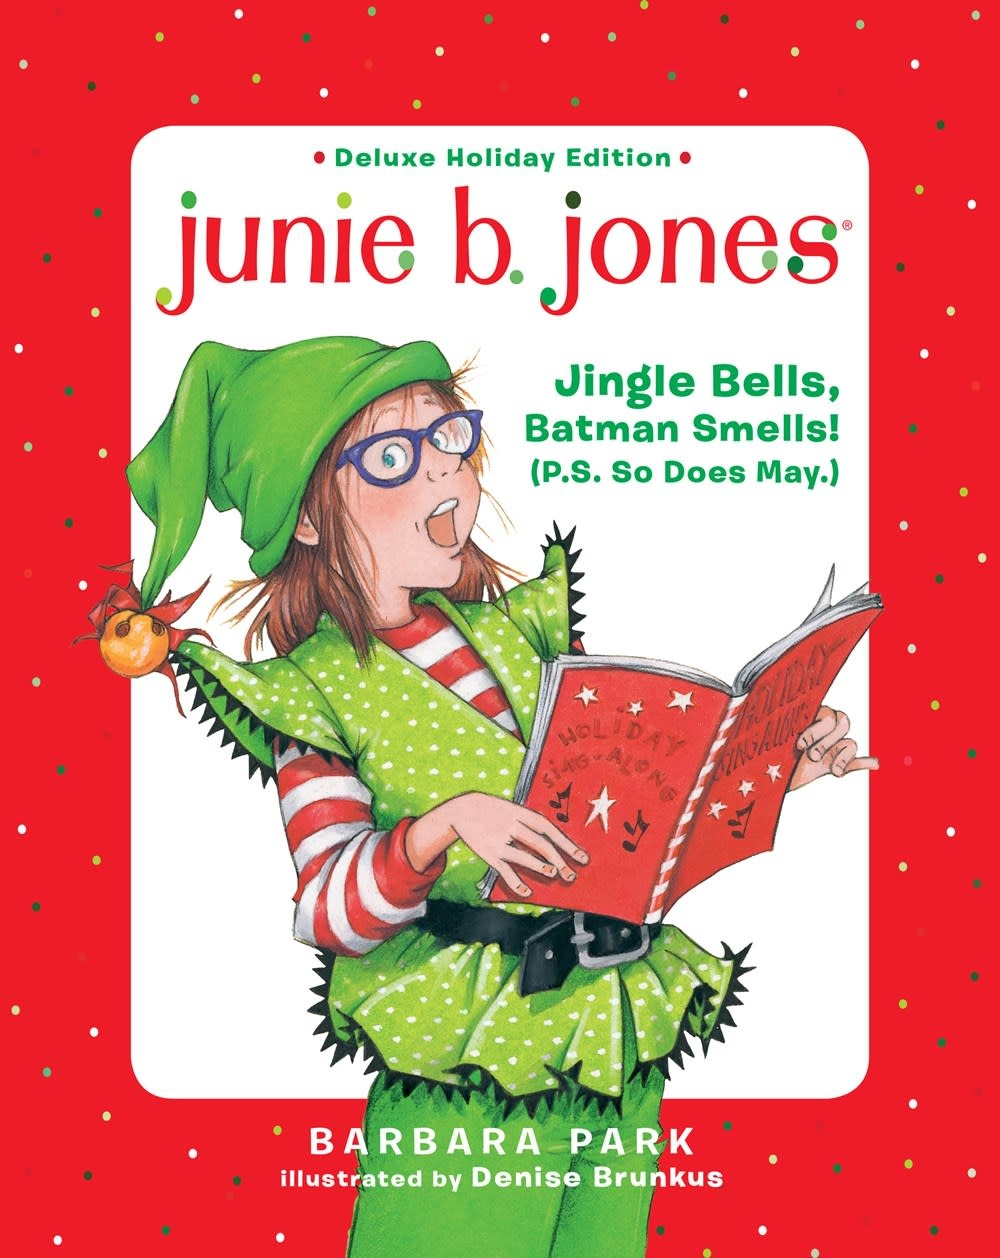 Random House Books for Young Readers Junie B. Jones: Jingle Bells, Batman Smells! (P.S. So Does May.)